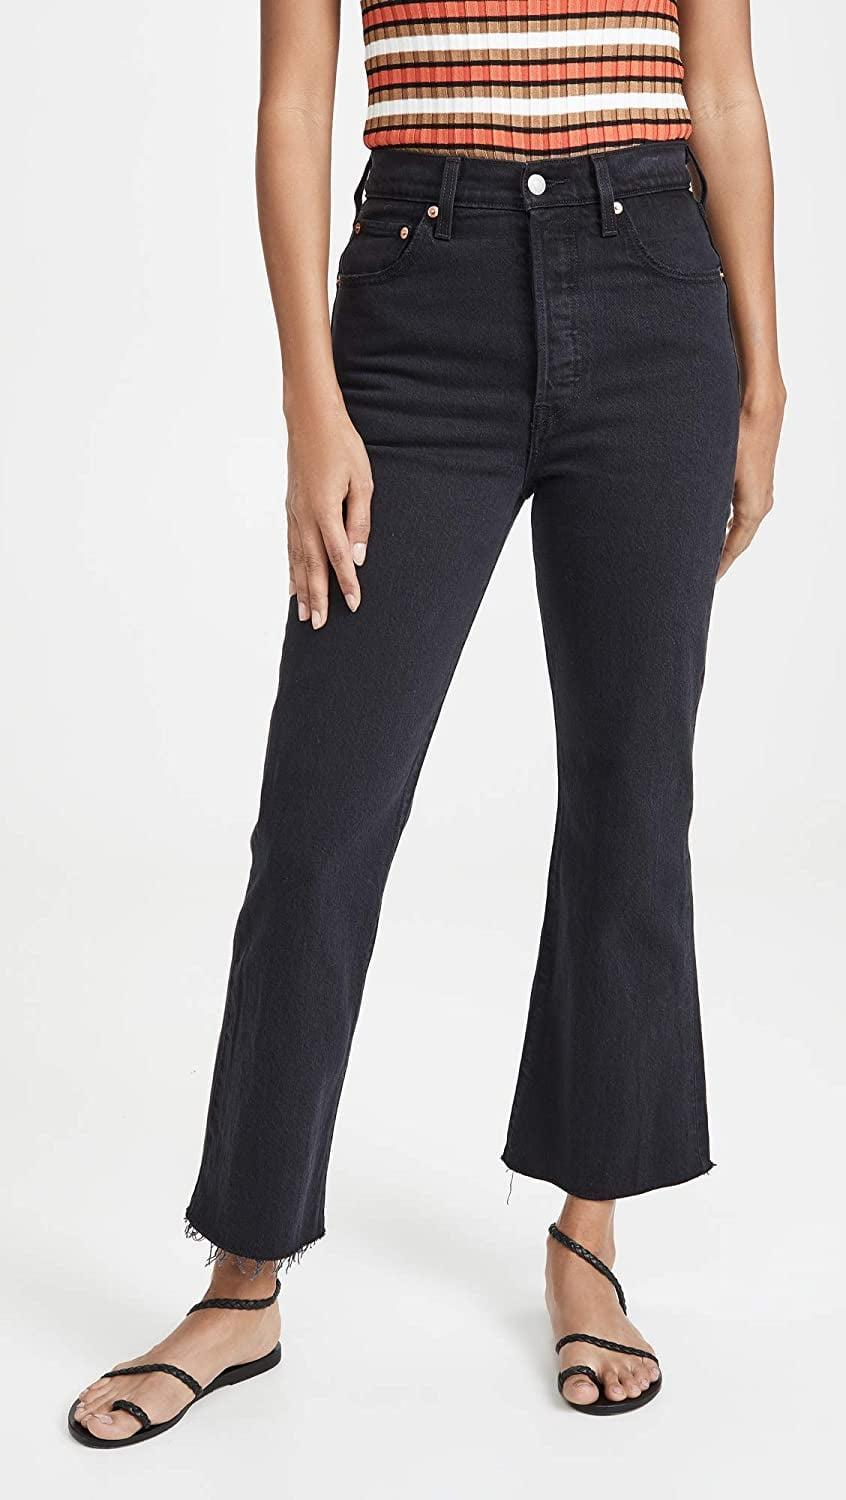 """<p>These <a href=""""https://www.popsugar.com/buy/Levi-Ribcage-Flare-Jeans-585814?p_name=Levi%27s%20Ribcage%20Flare%20Jeans&retailer=amazon.com&pid=585814&price=35&evar1=fab%3Aus&evar9=46804763&evar98=https%3A%2F%2Fwww.popsugar.com%2Ffashion%2Fphoto-gallery%2F46804763%2Fimage%2F46804872%2FThese-High-Flares&list1=shopping%2Cfall%20fashion%2Camazon%2Cfall&prop13=mobile&pdata=1"""" class=""""link rapid-noclick-resp"""" rel=""""nofollow noopener"""" target=""""_blank"""" data-ylk=""""slk:Levi's Ribcage Flare Jeans"""">Levi's Ribcage Flare Jeans</a> ($35) bring the drama in the best way possible.</p>"""